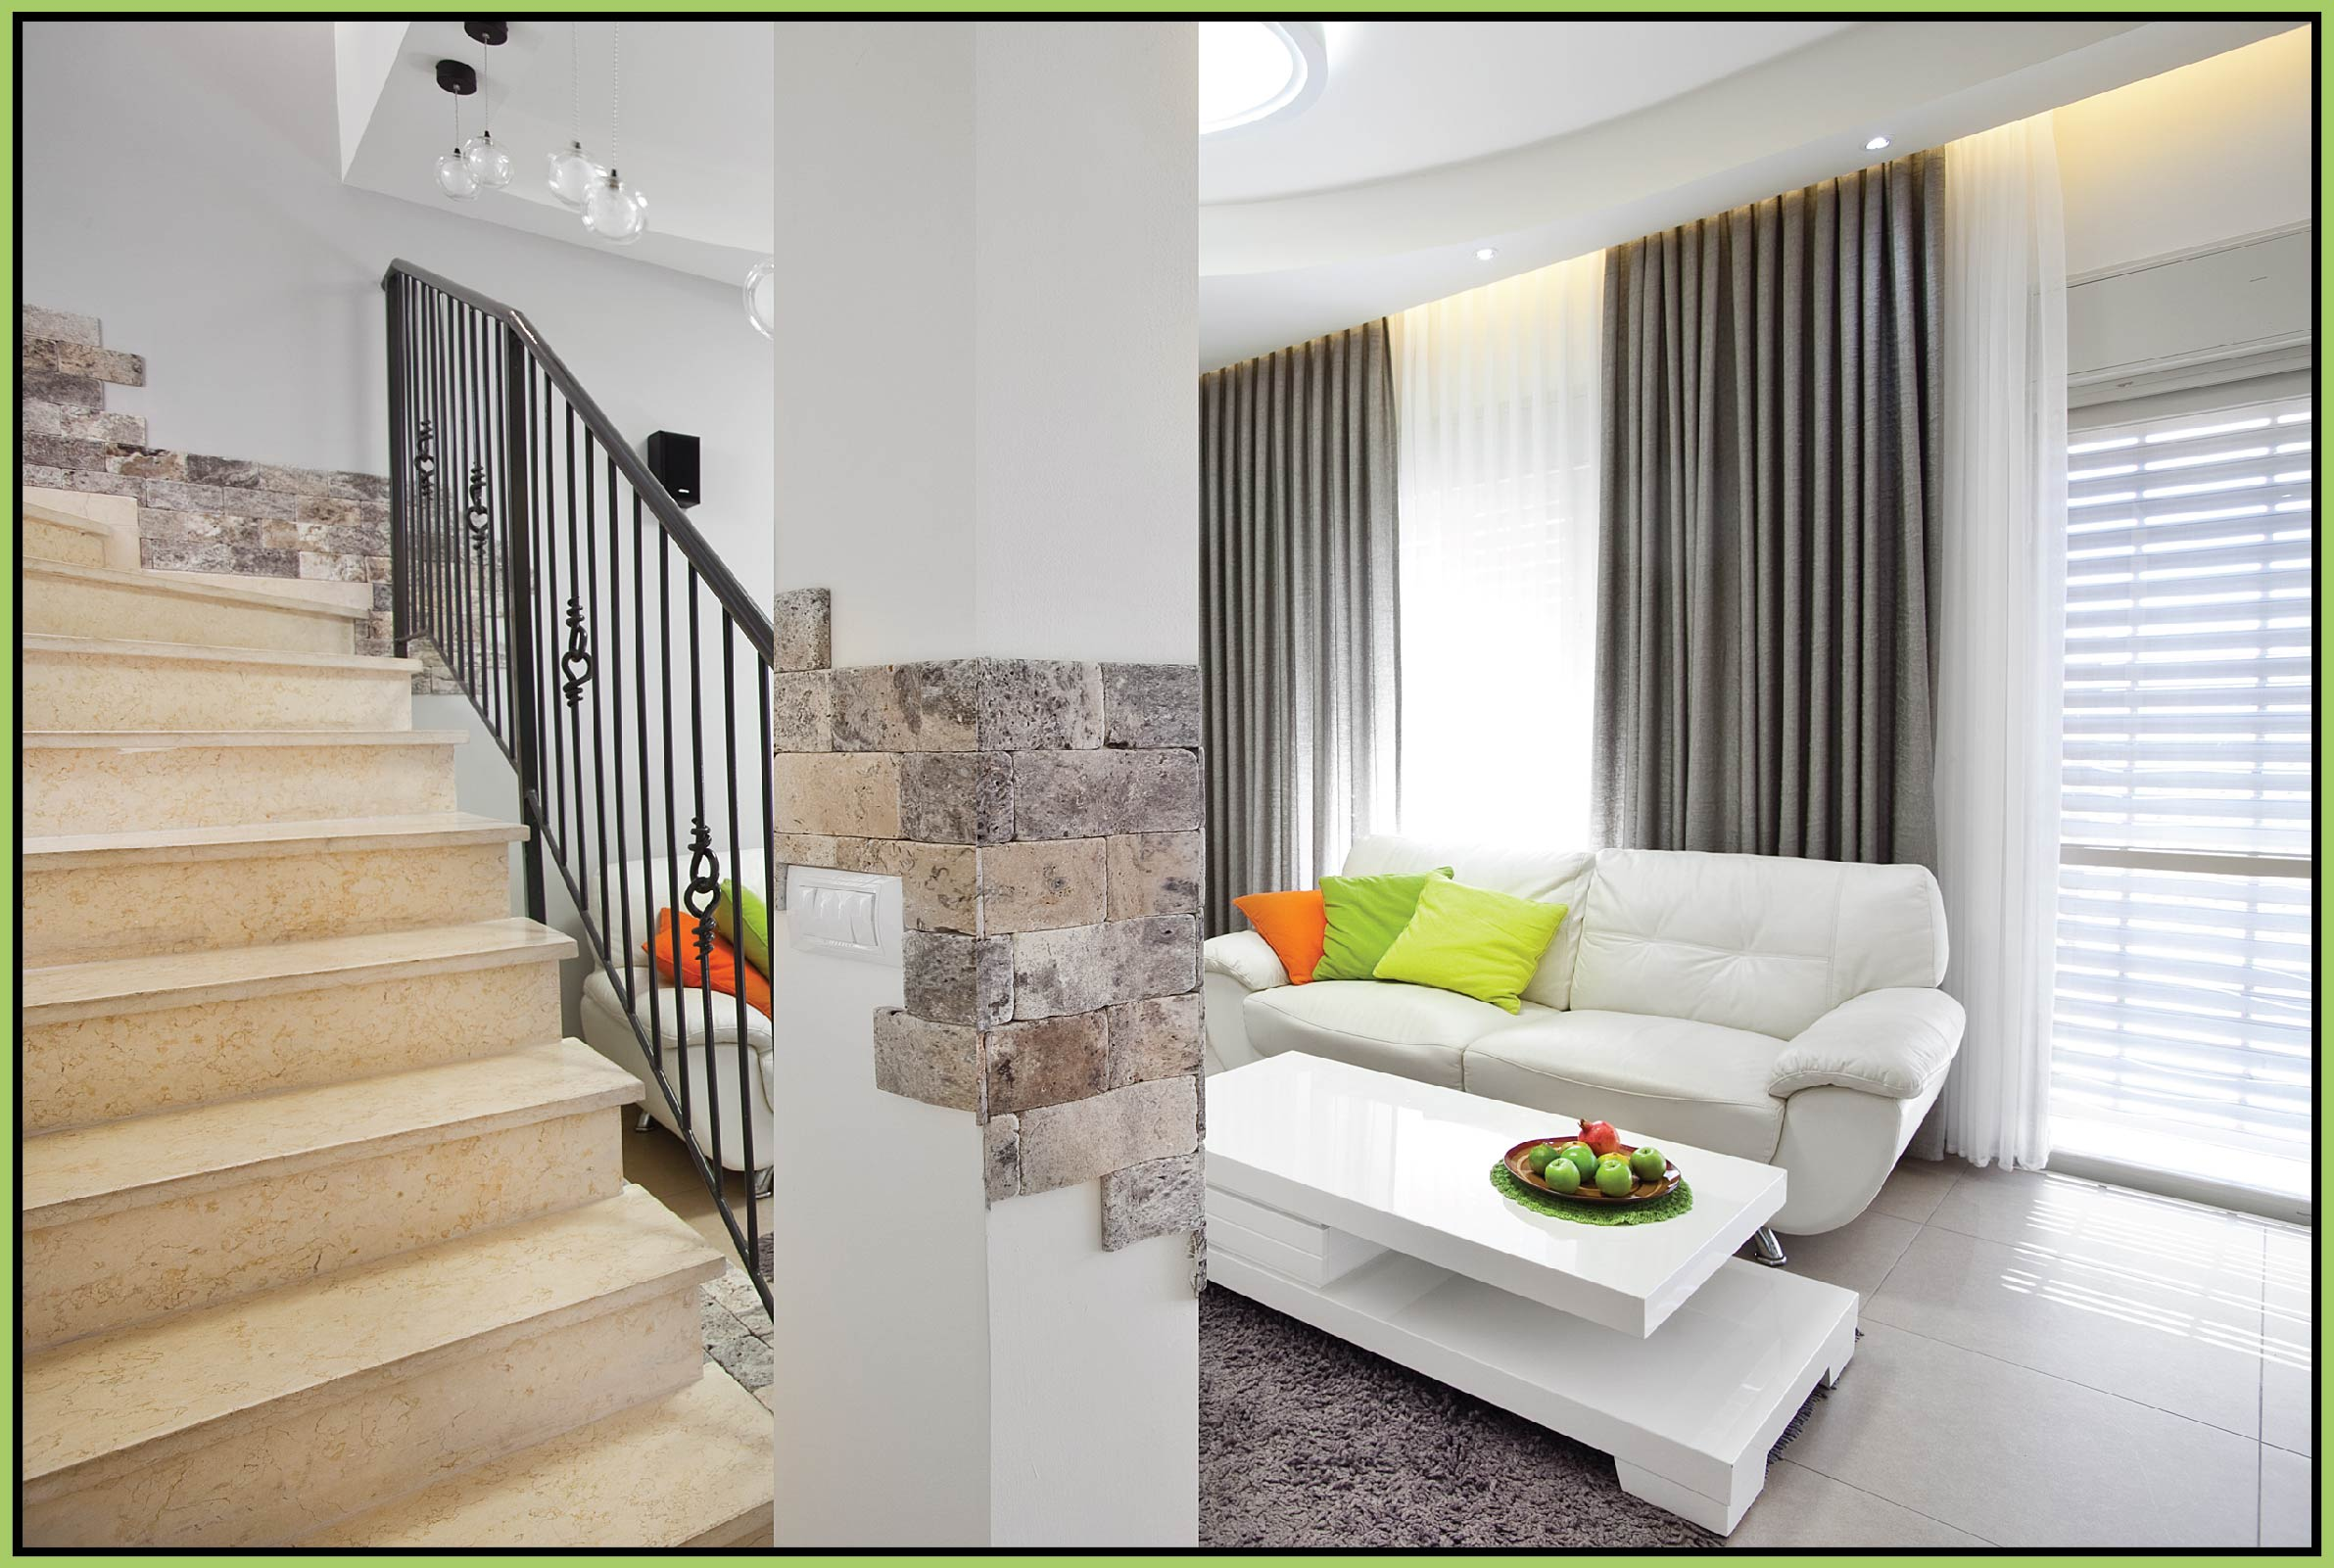 Stairs in the living room